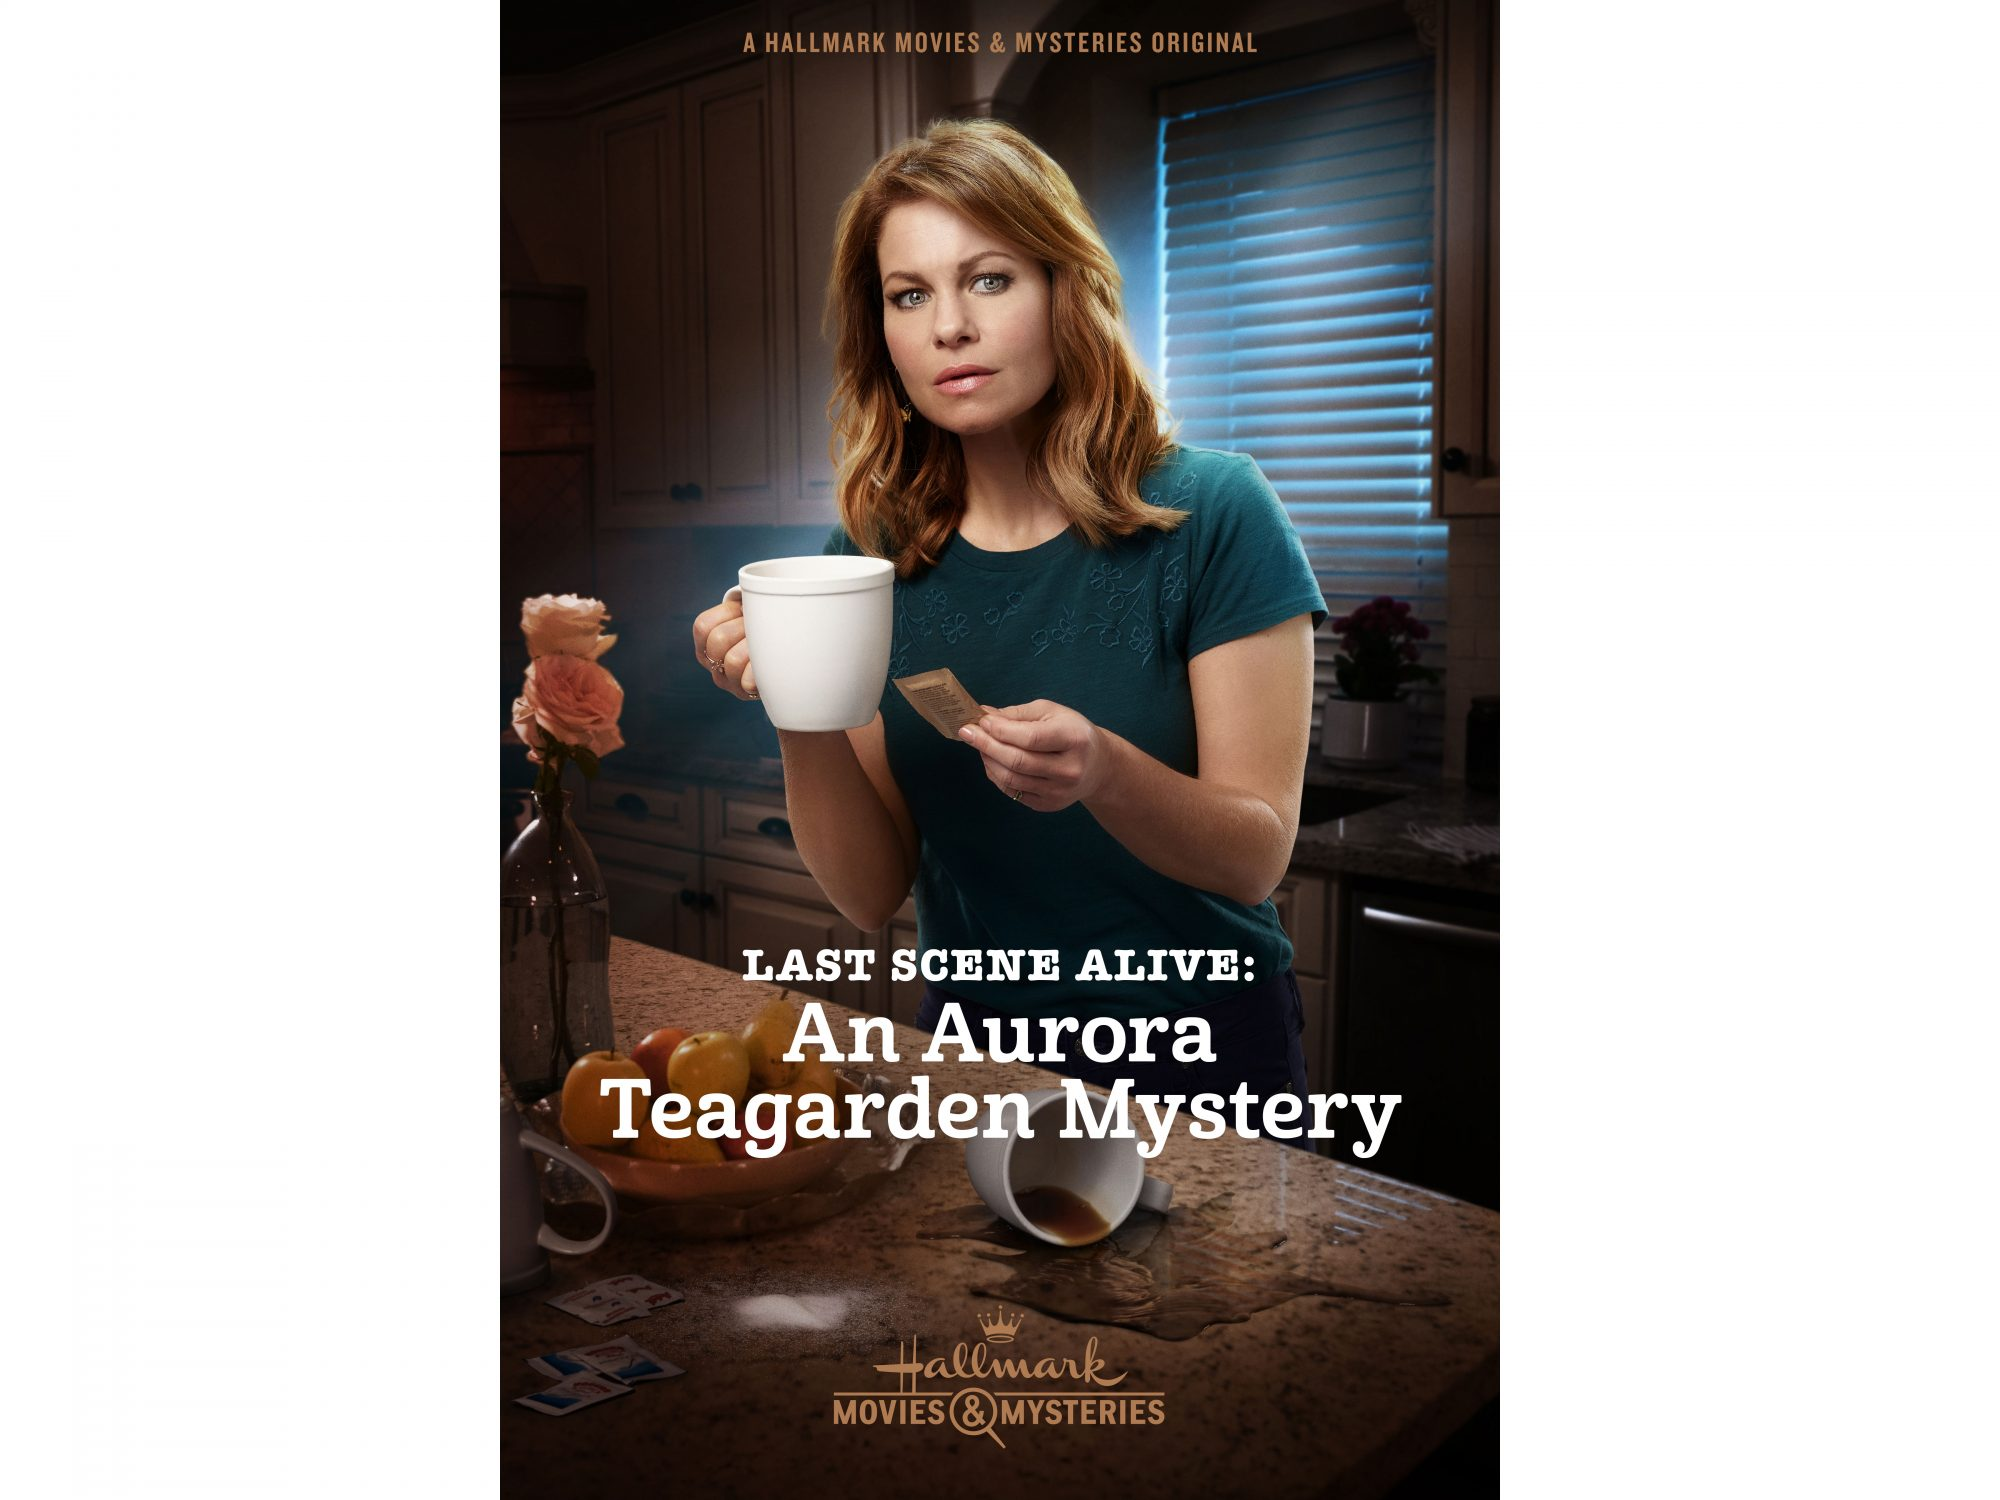 Aurora Teagarden Mystery by Hallmark Movies & Mysteries